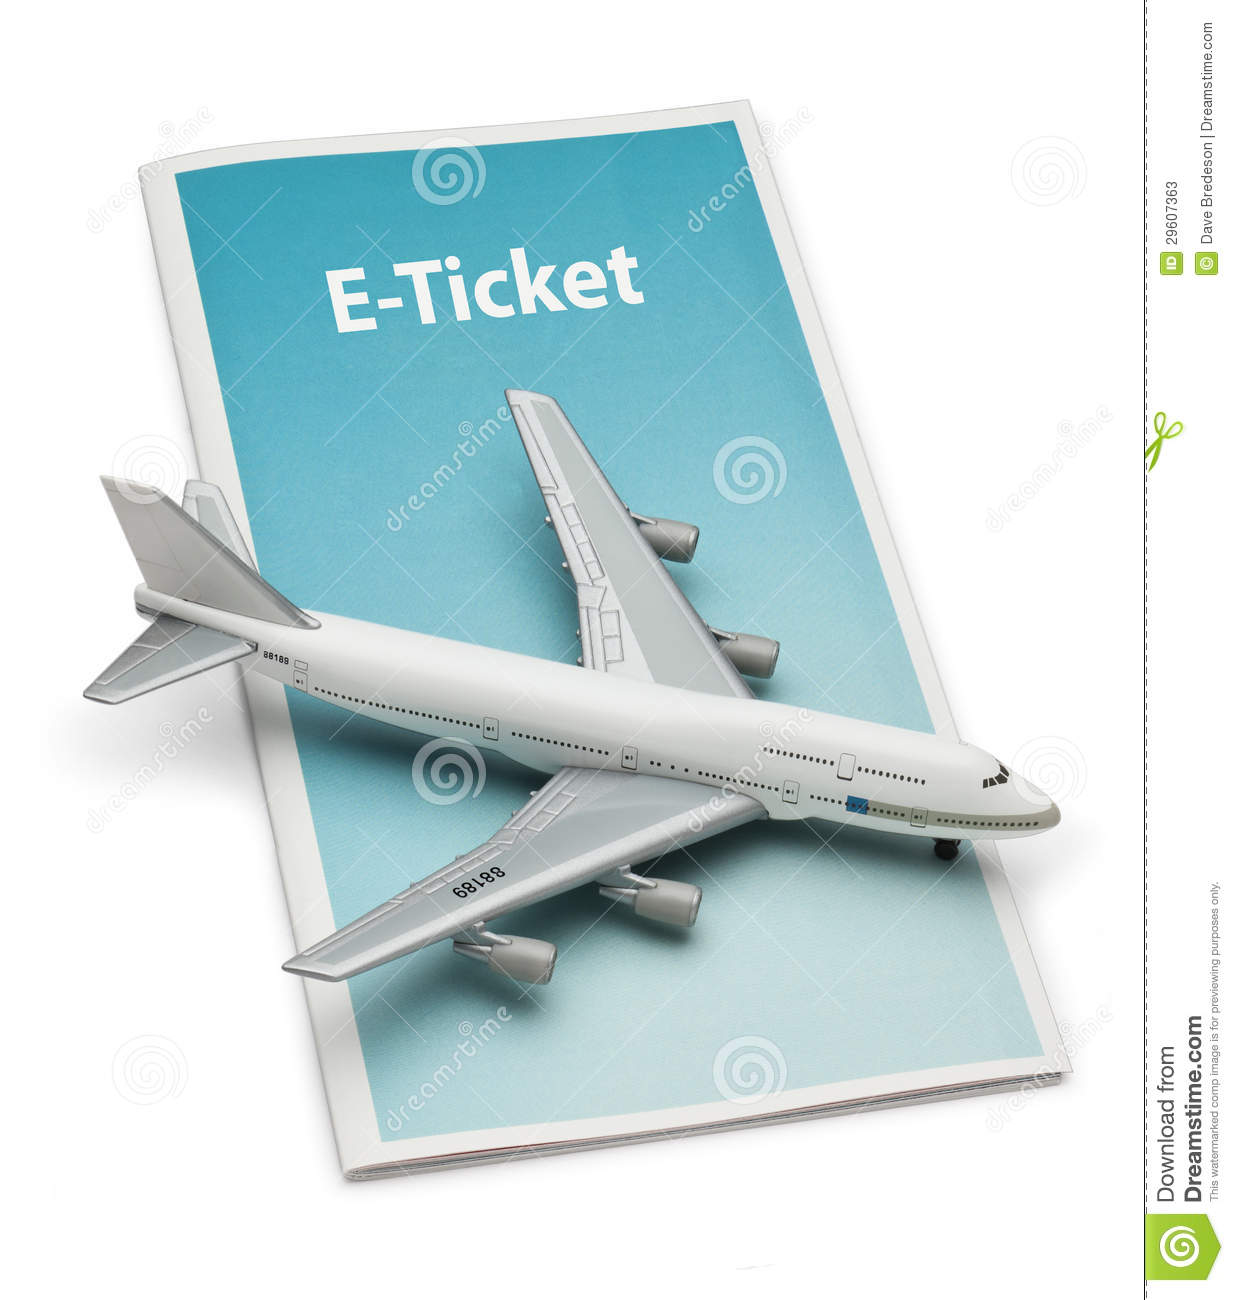 More similar stock images of travel airplane e ticket